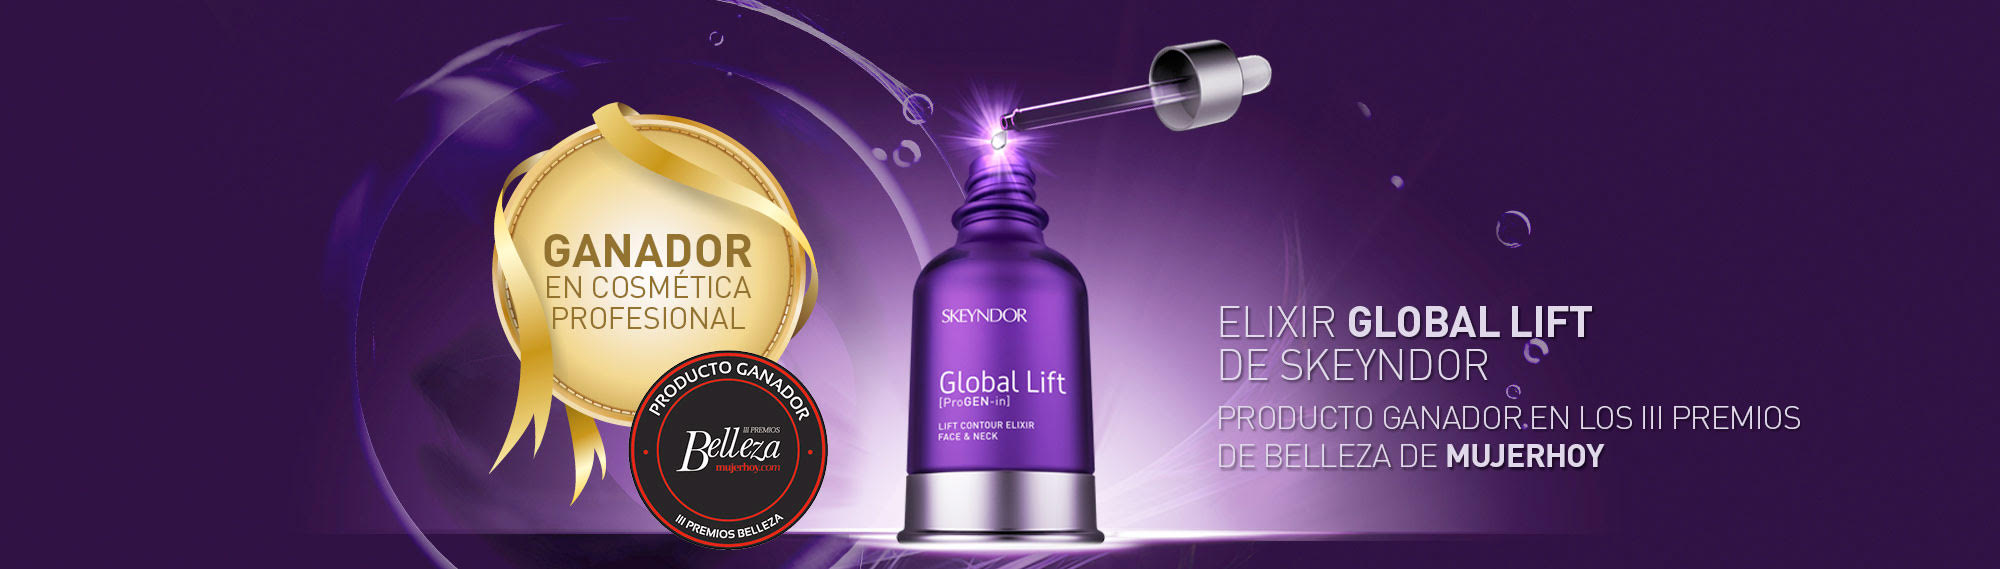 Comprar Elixir Global Lift